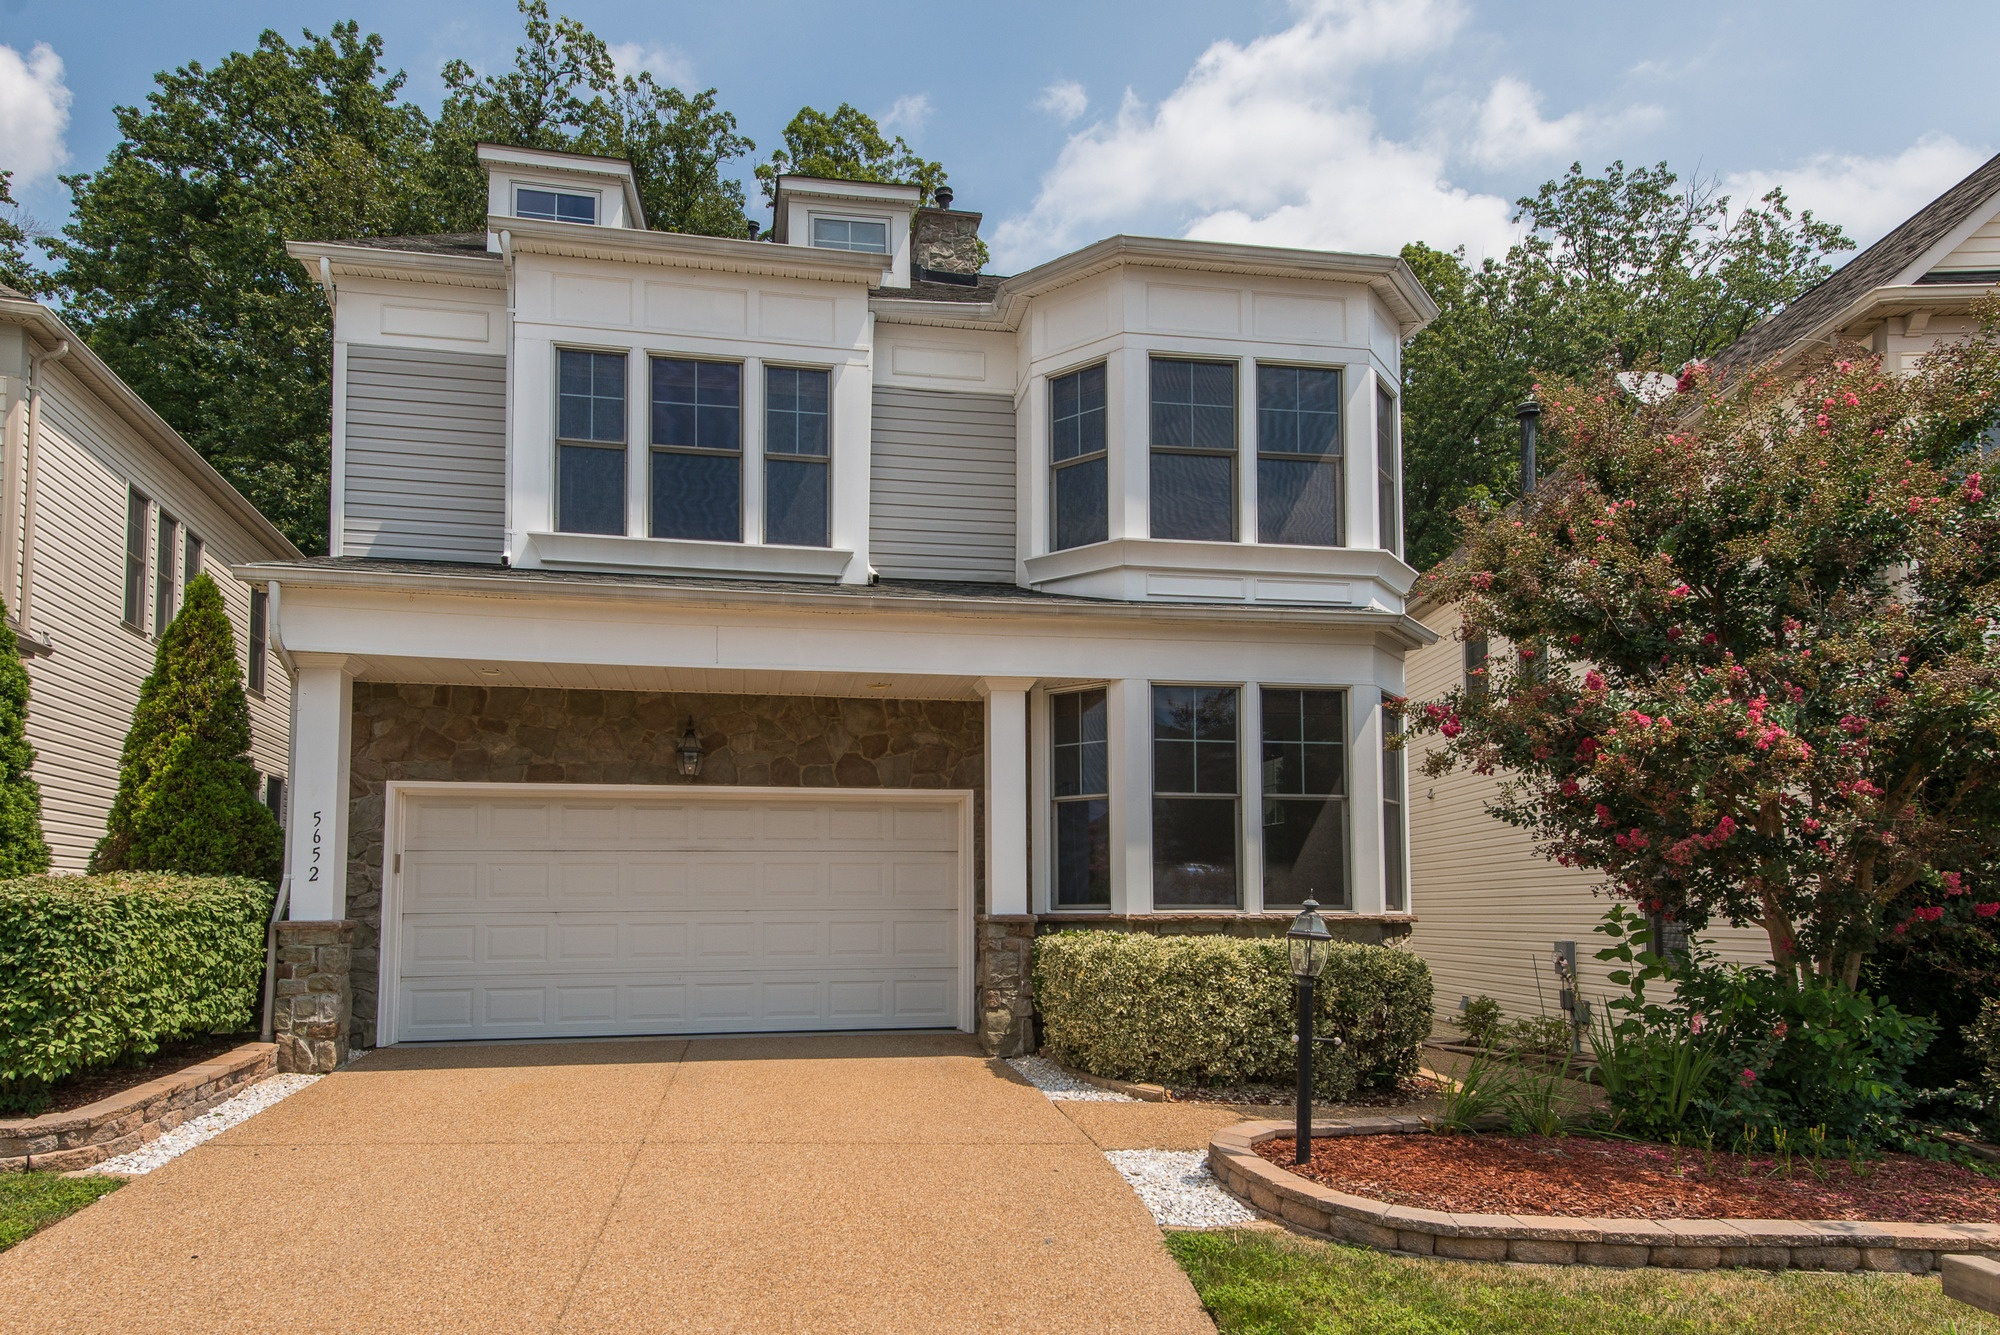 SOLD: Elegant 5 Bedroom Kingstowne Home